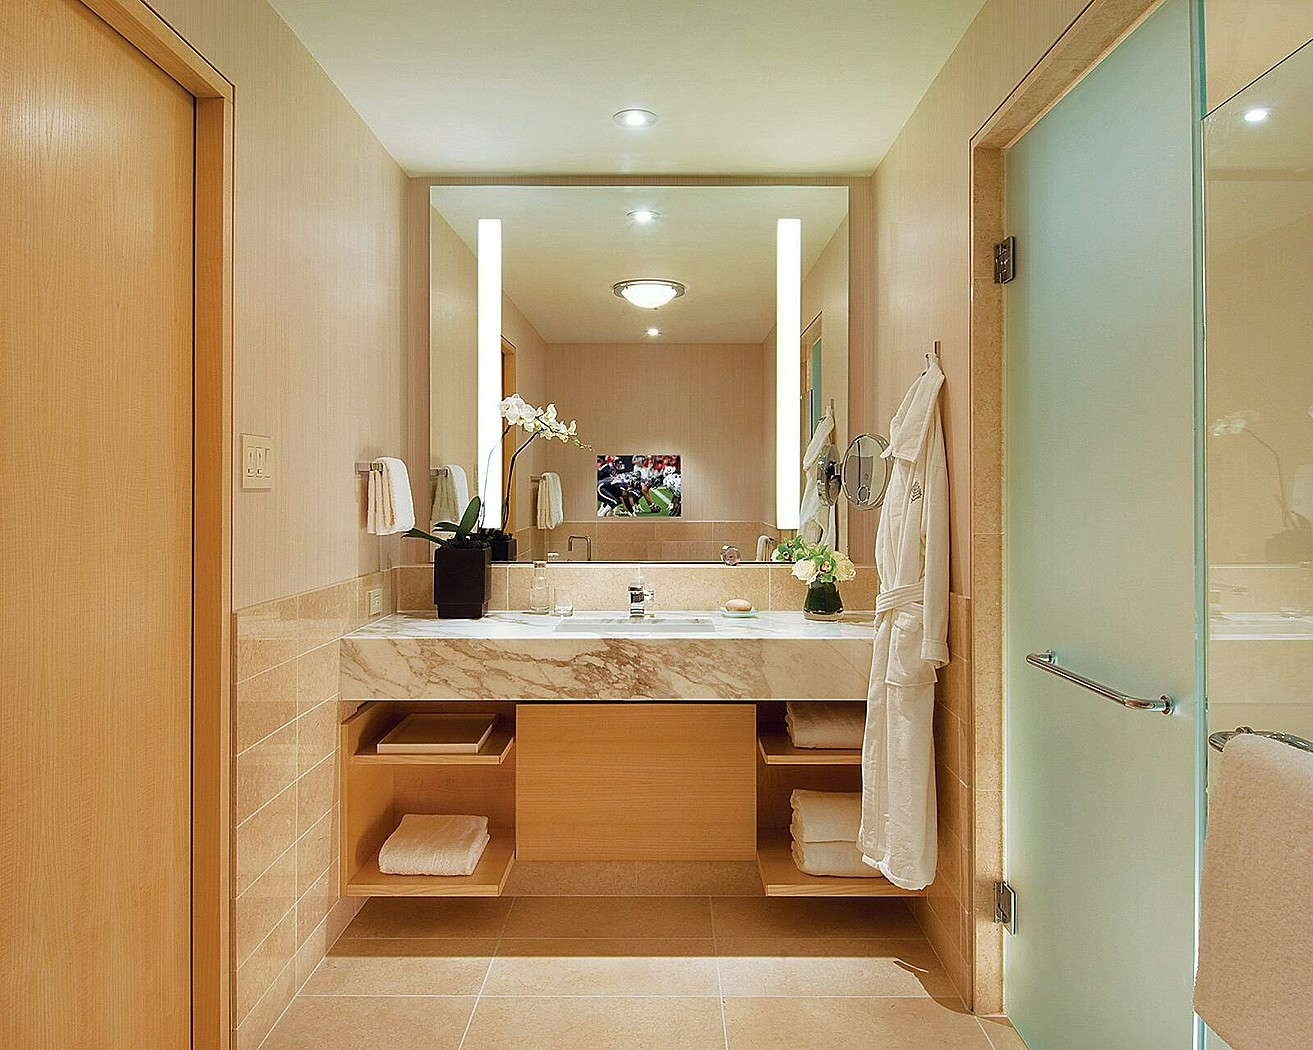 Bathroom Mirrors Seattle Four Seasons Hotel Seattle Expert Review Fodors Travel